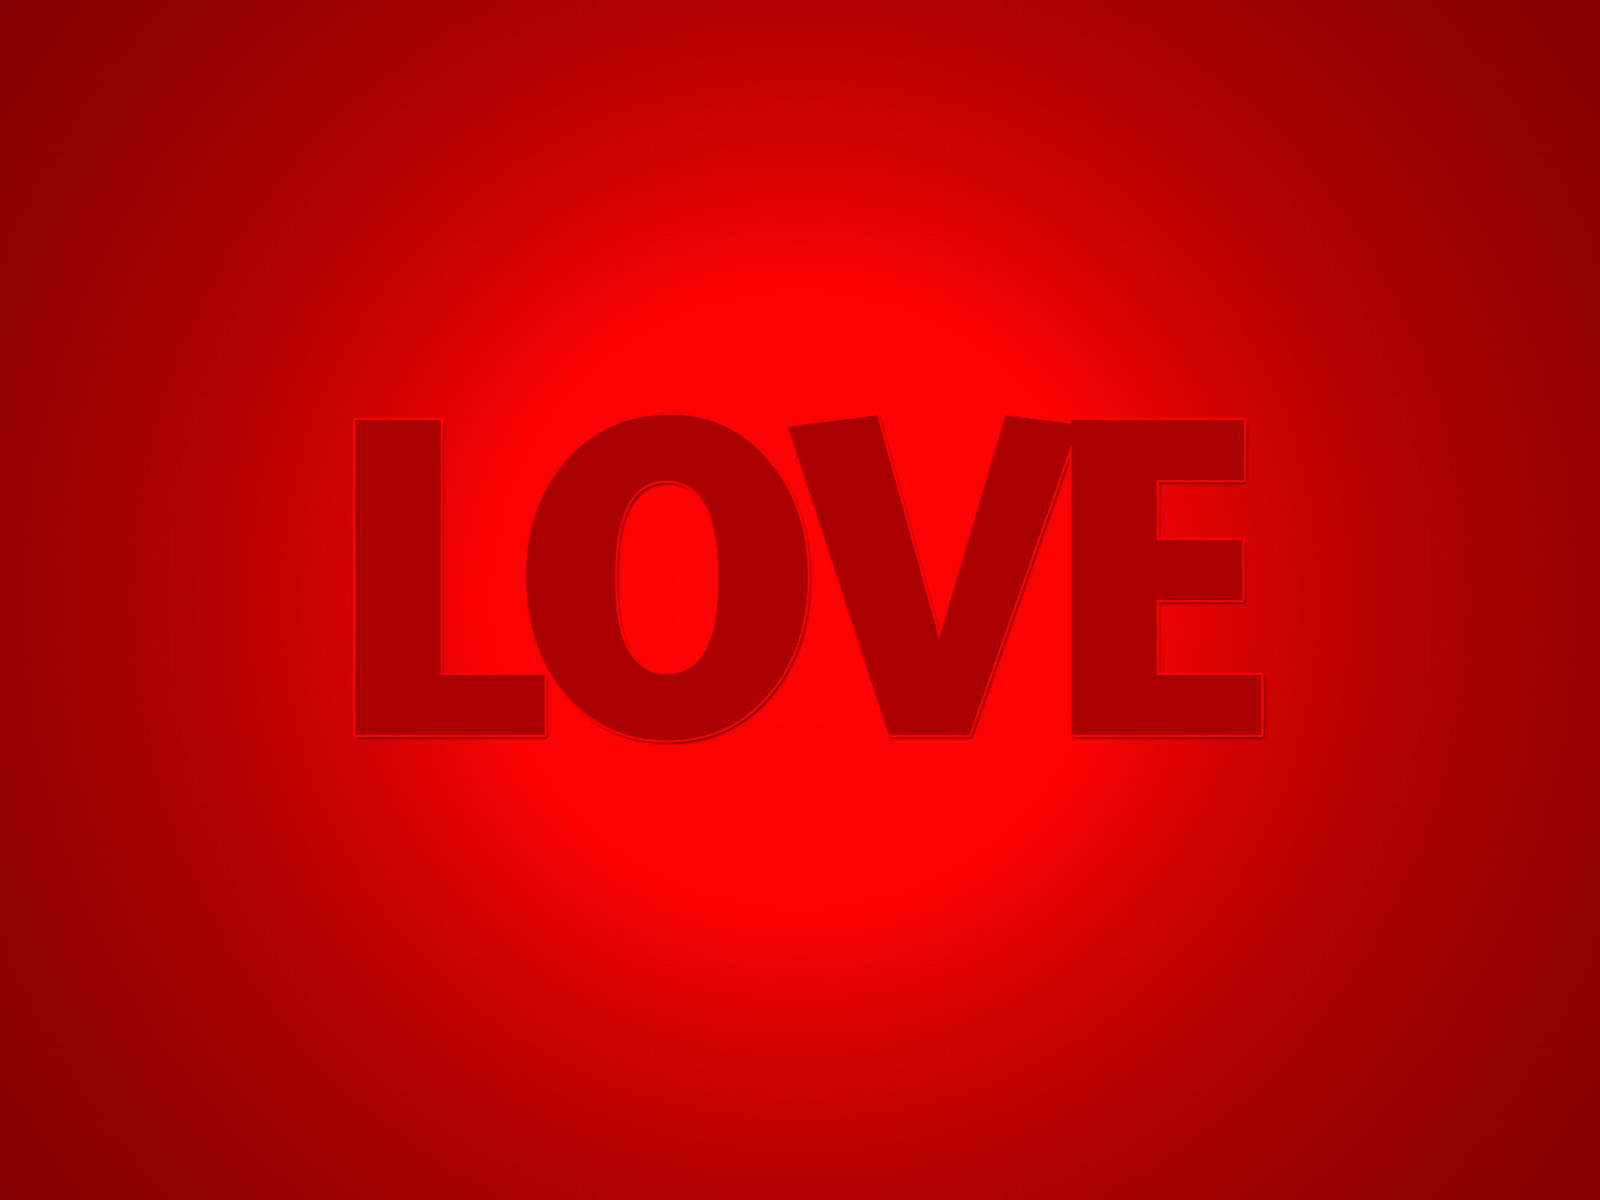 Red Love Wallpaper Hd : Red color Wallpapers - WallpaperSafari